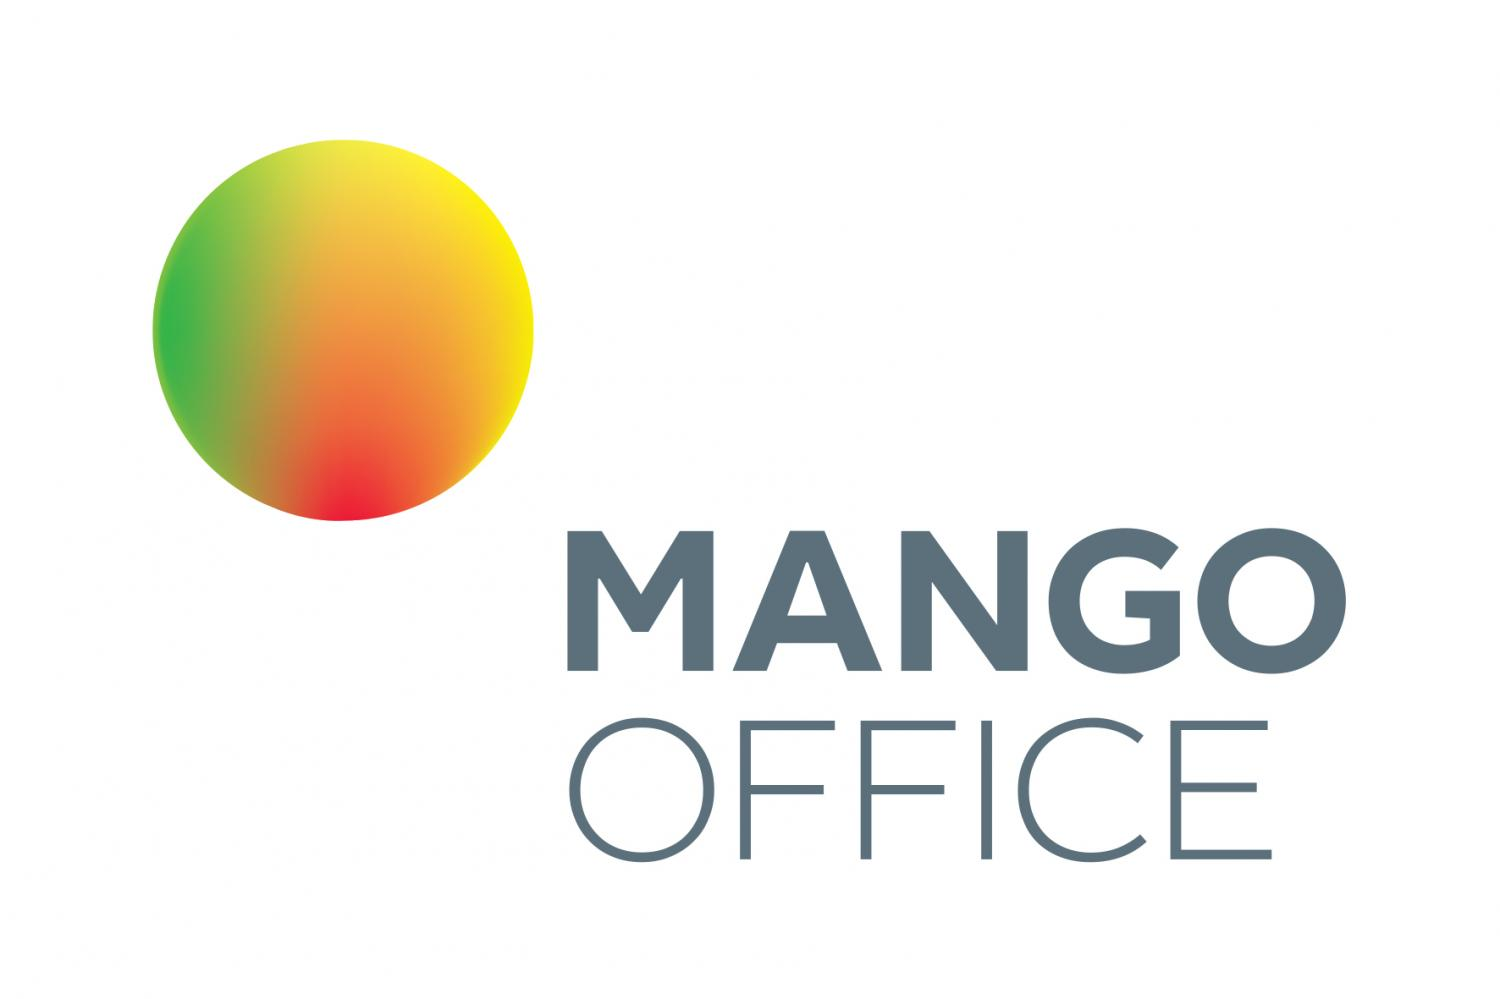 Mango office